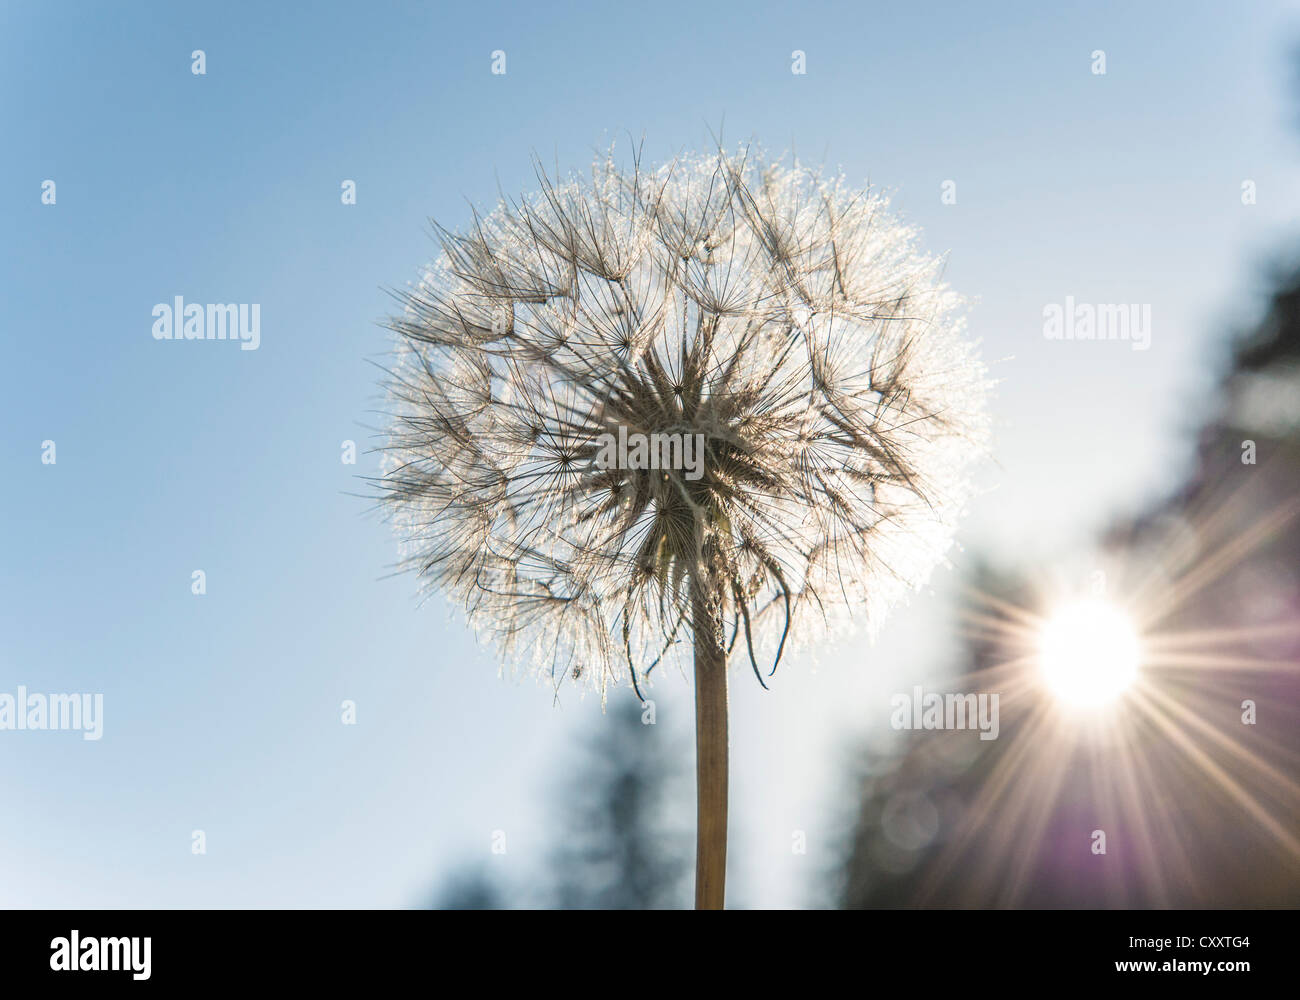 Dandelion, withered dandelion, blowball, dandelion clock (Taraxacum), with diaspores, seeds - Stock Image